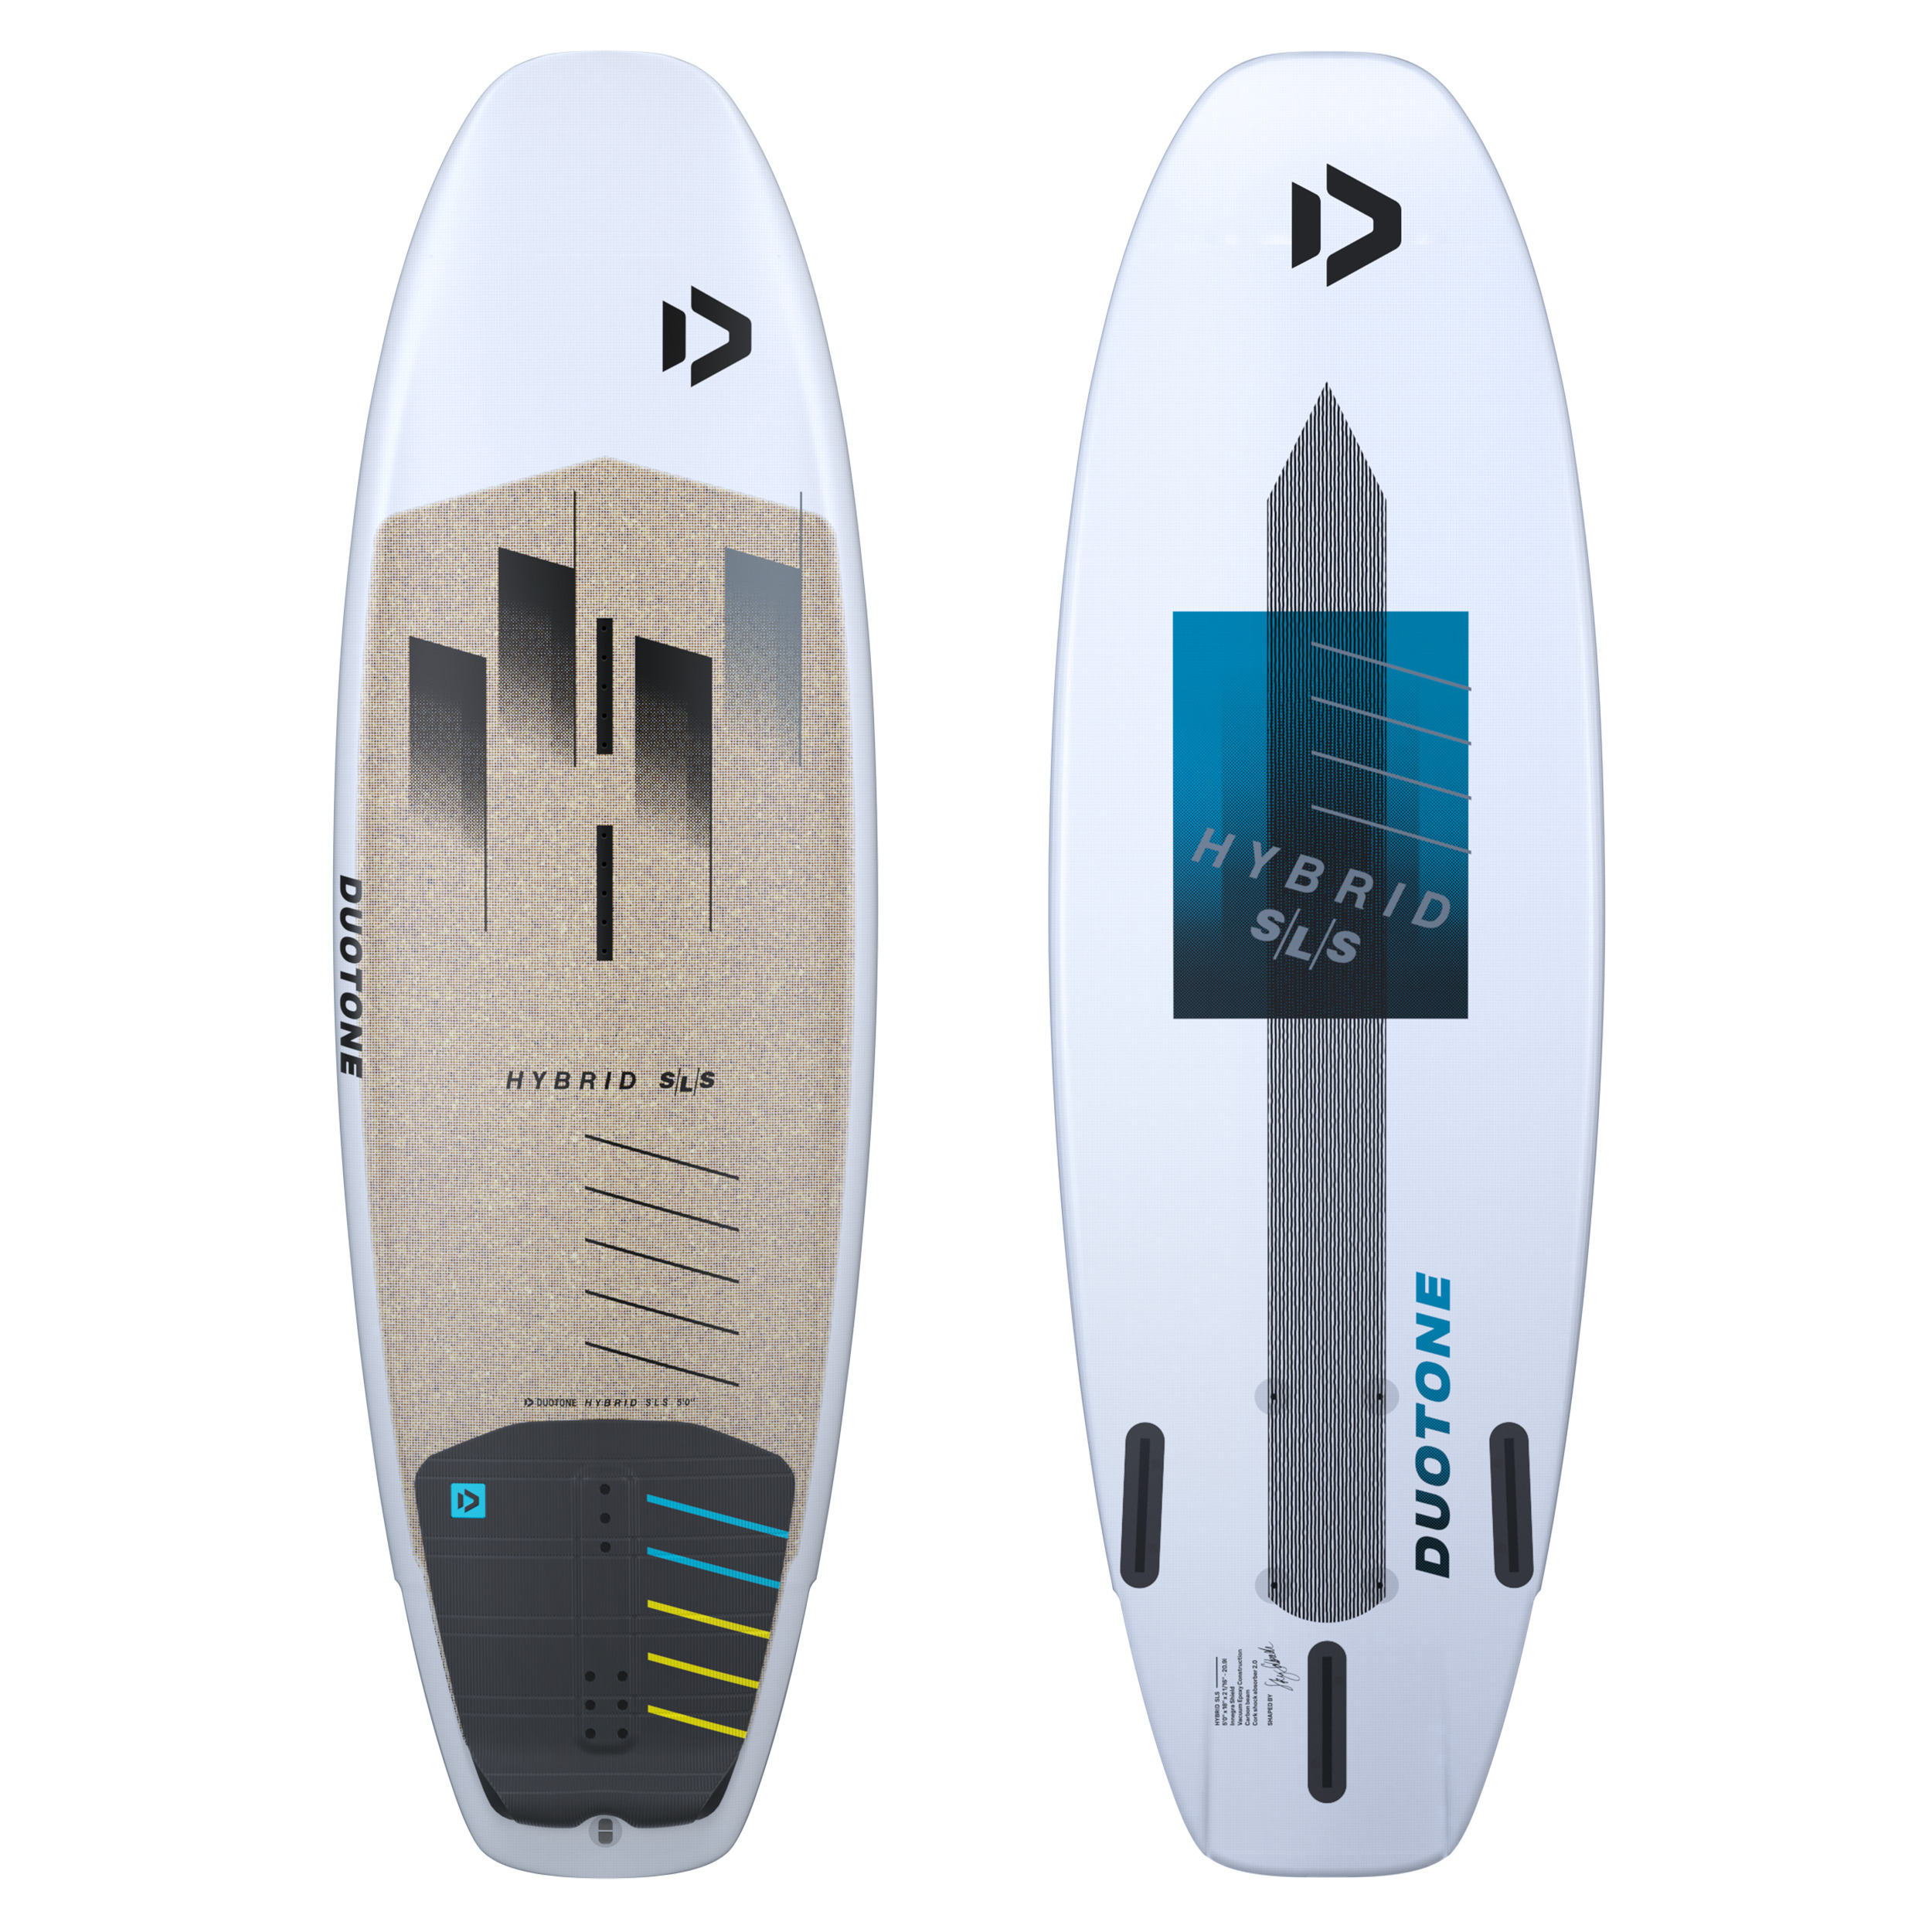 Duotone HYBRID SLS 2-in-1 Surfboard and Foilboard 2021